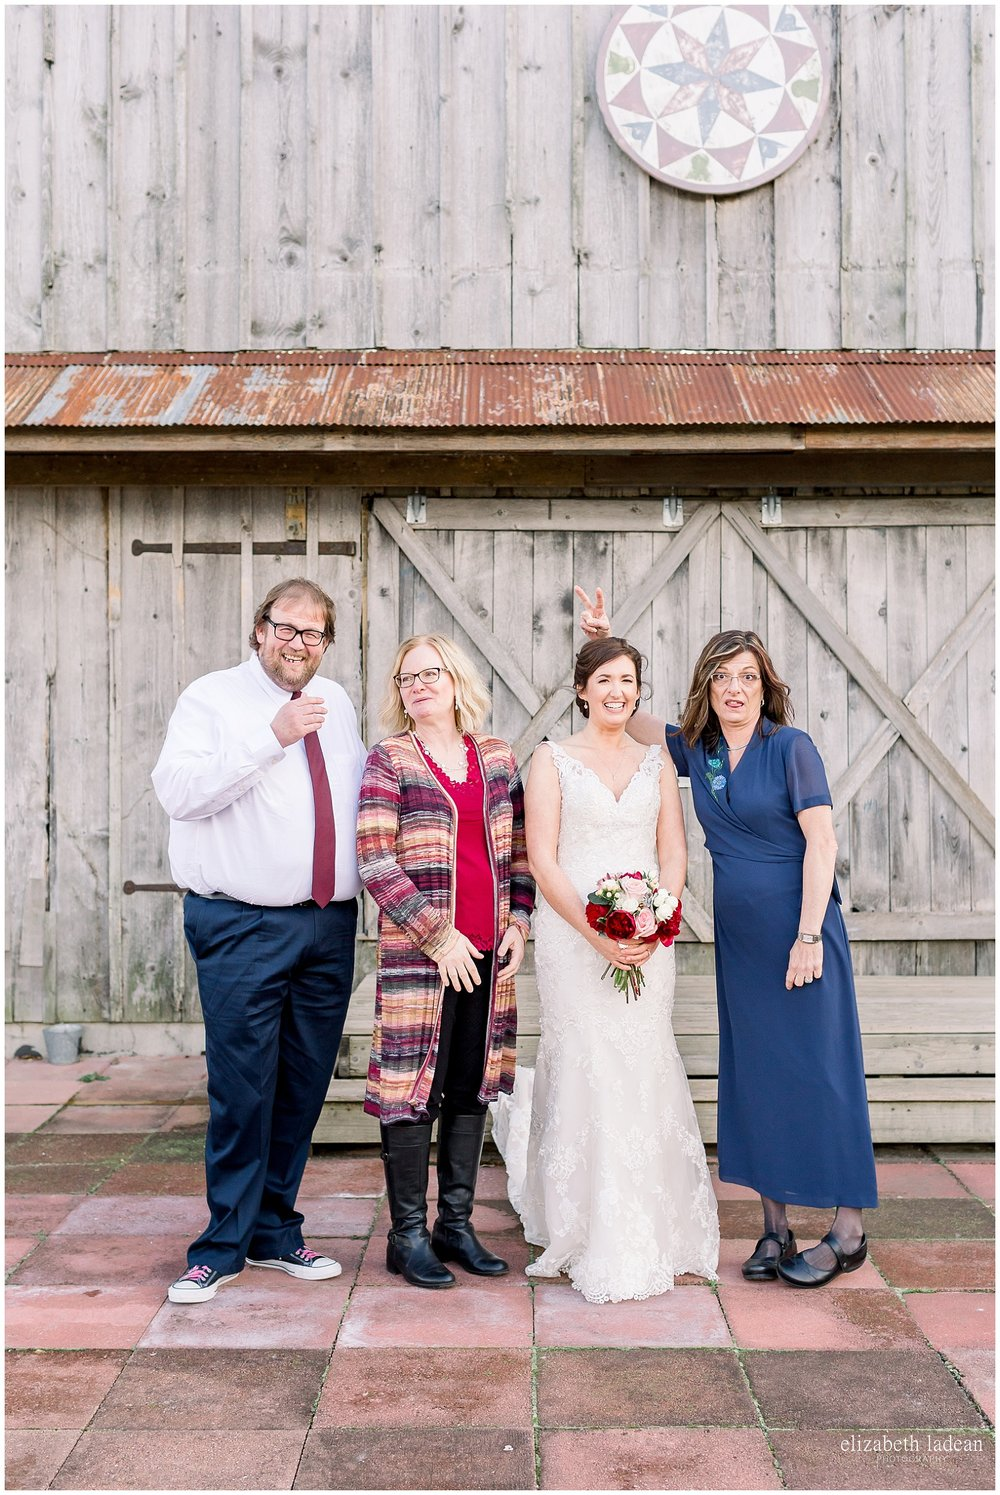 -behind-the-scenes-of-a-wedding-photographer-2018-elizabeth-ladean-photography-photo_3614.jpg